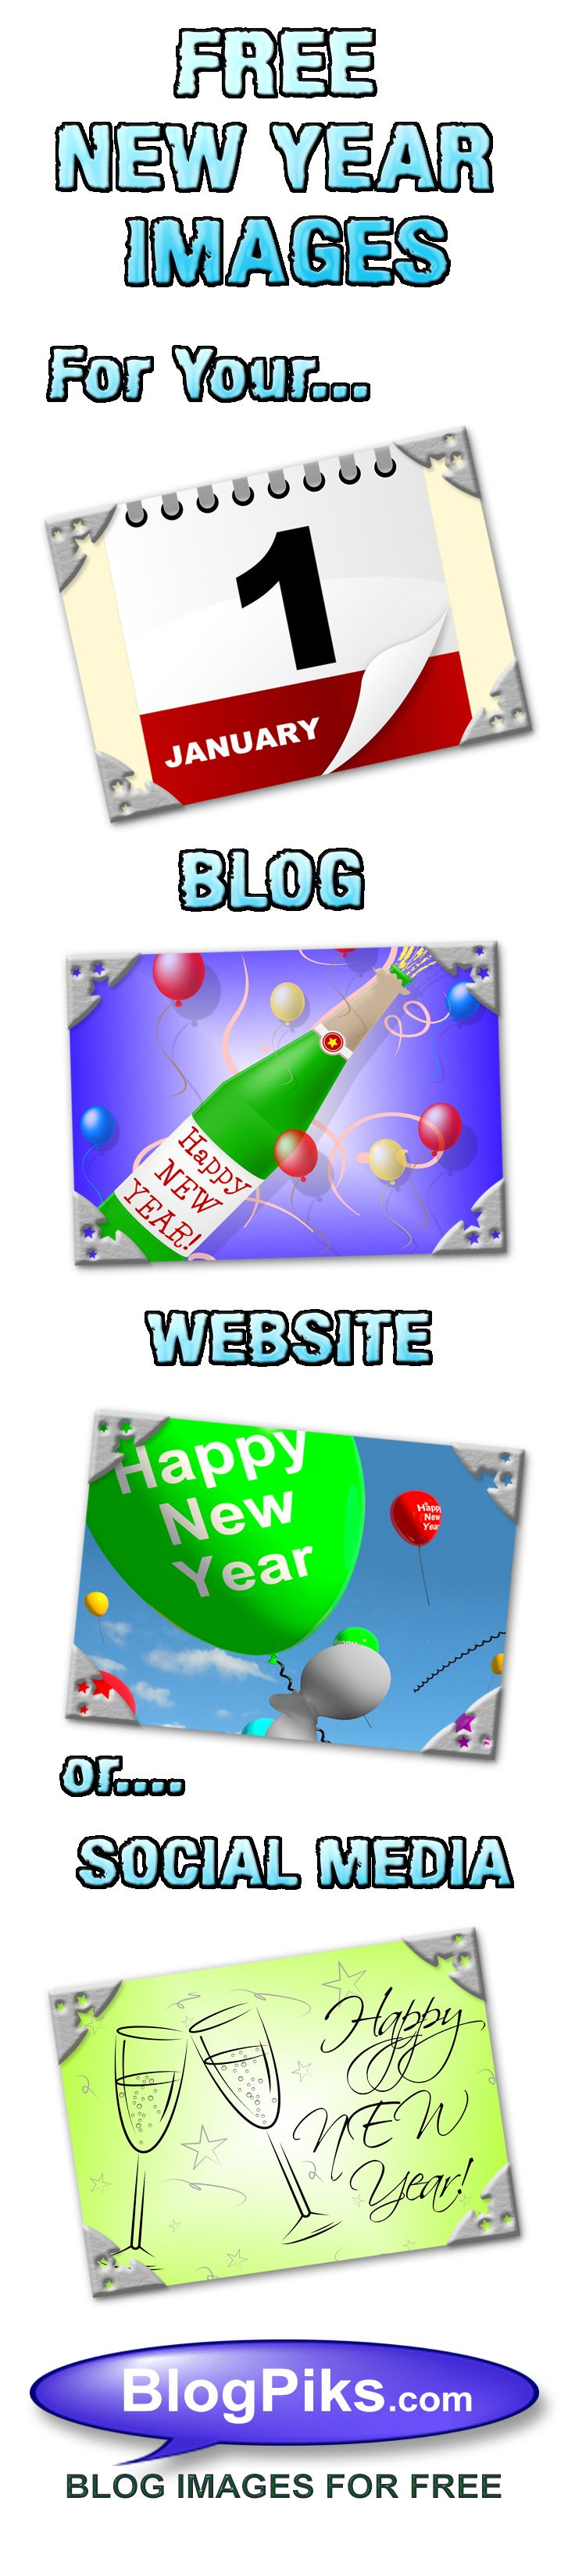 Free New Year Images For Your Blog, Website Or Social Media